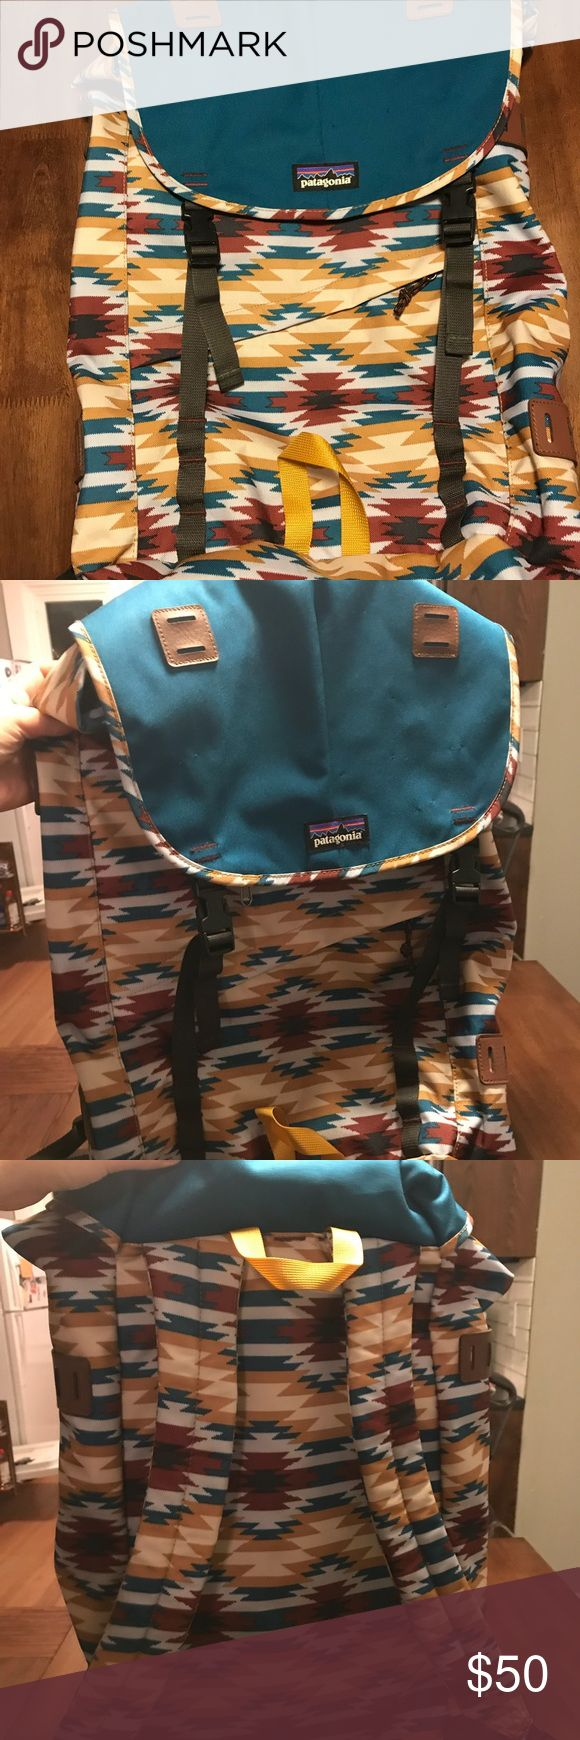 Patagonia Arbor Backpack For sale is my Patagonia backpack. It has seen very little use. Has a few small holes in the fabric on the top because I displayed buttons on it. Patagonia Bags Backpacks